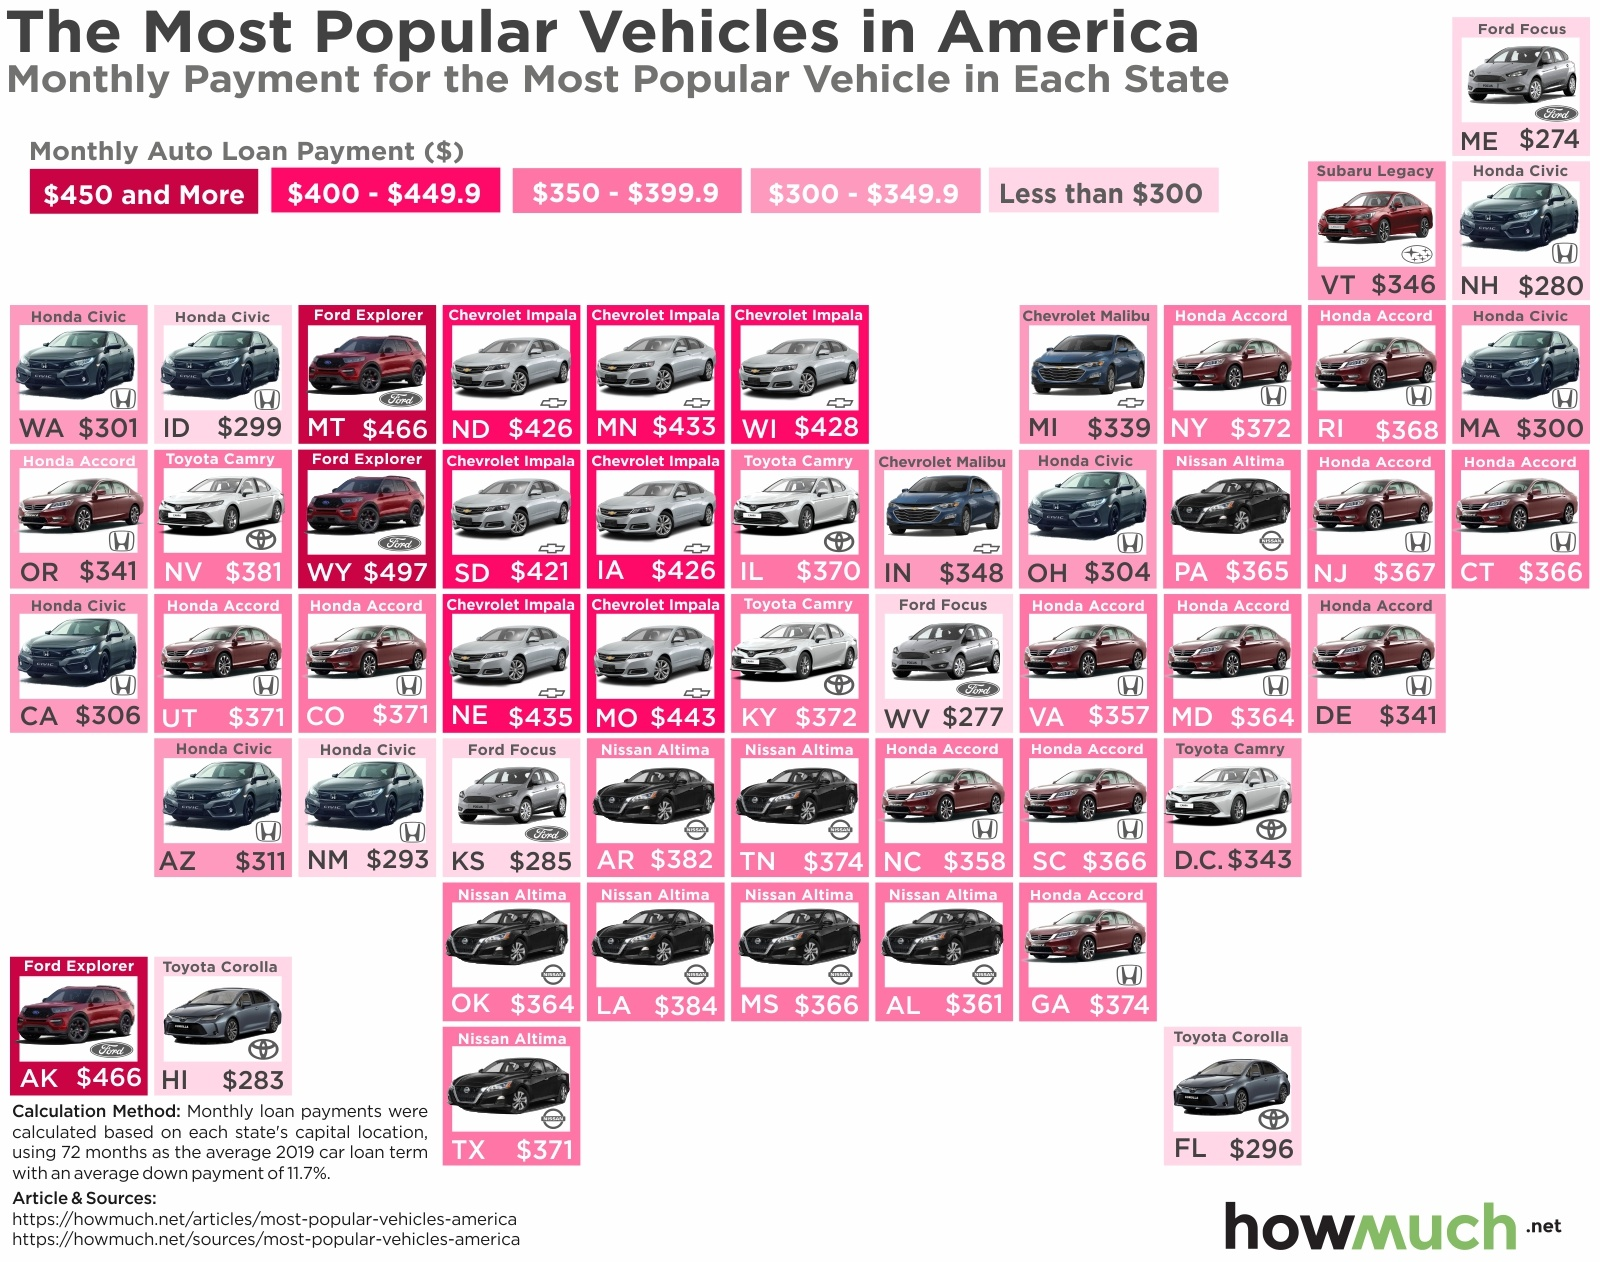 Visualizing Most Popular Vehicle in America